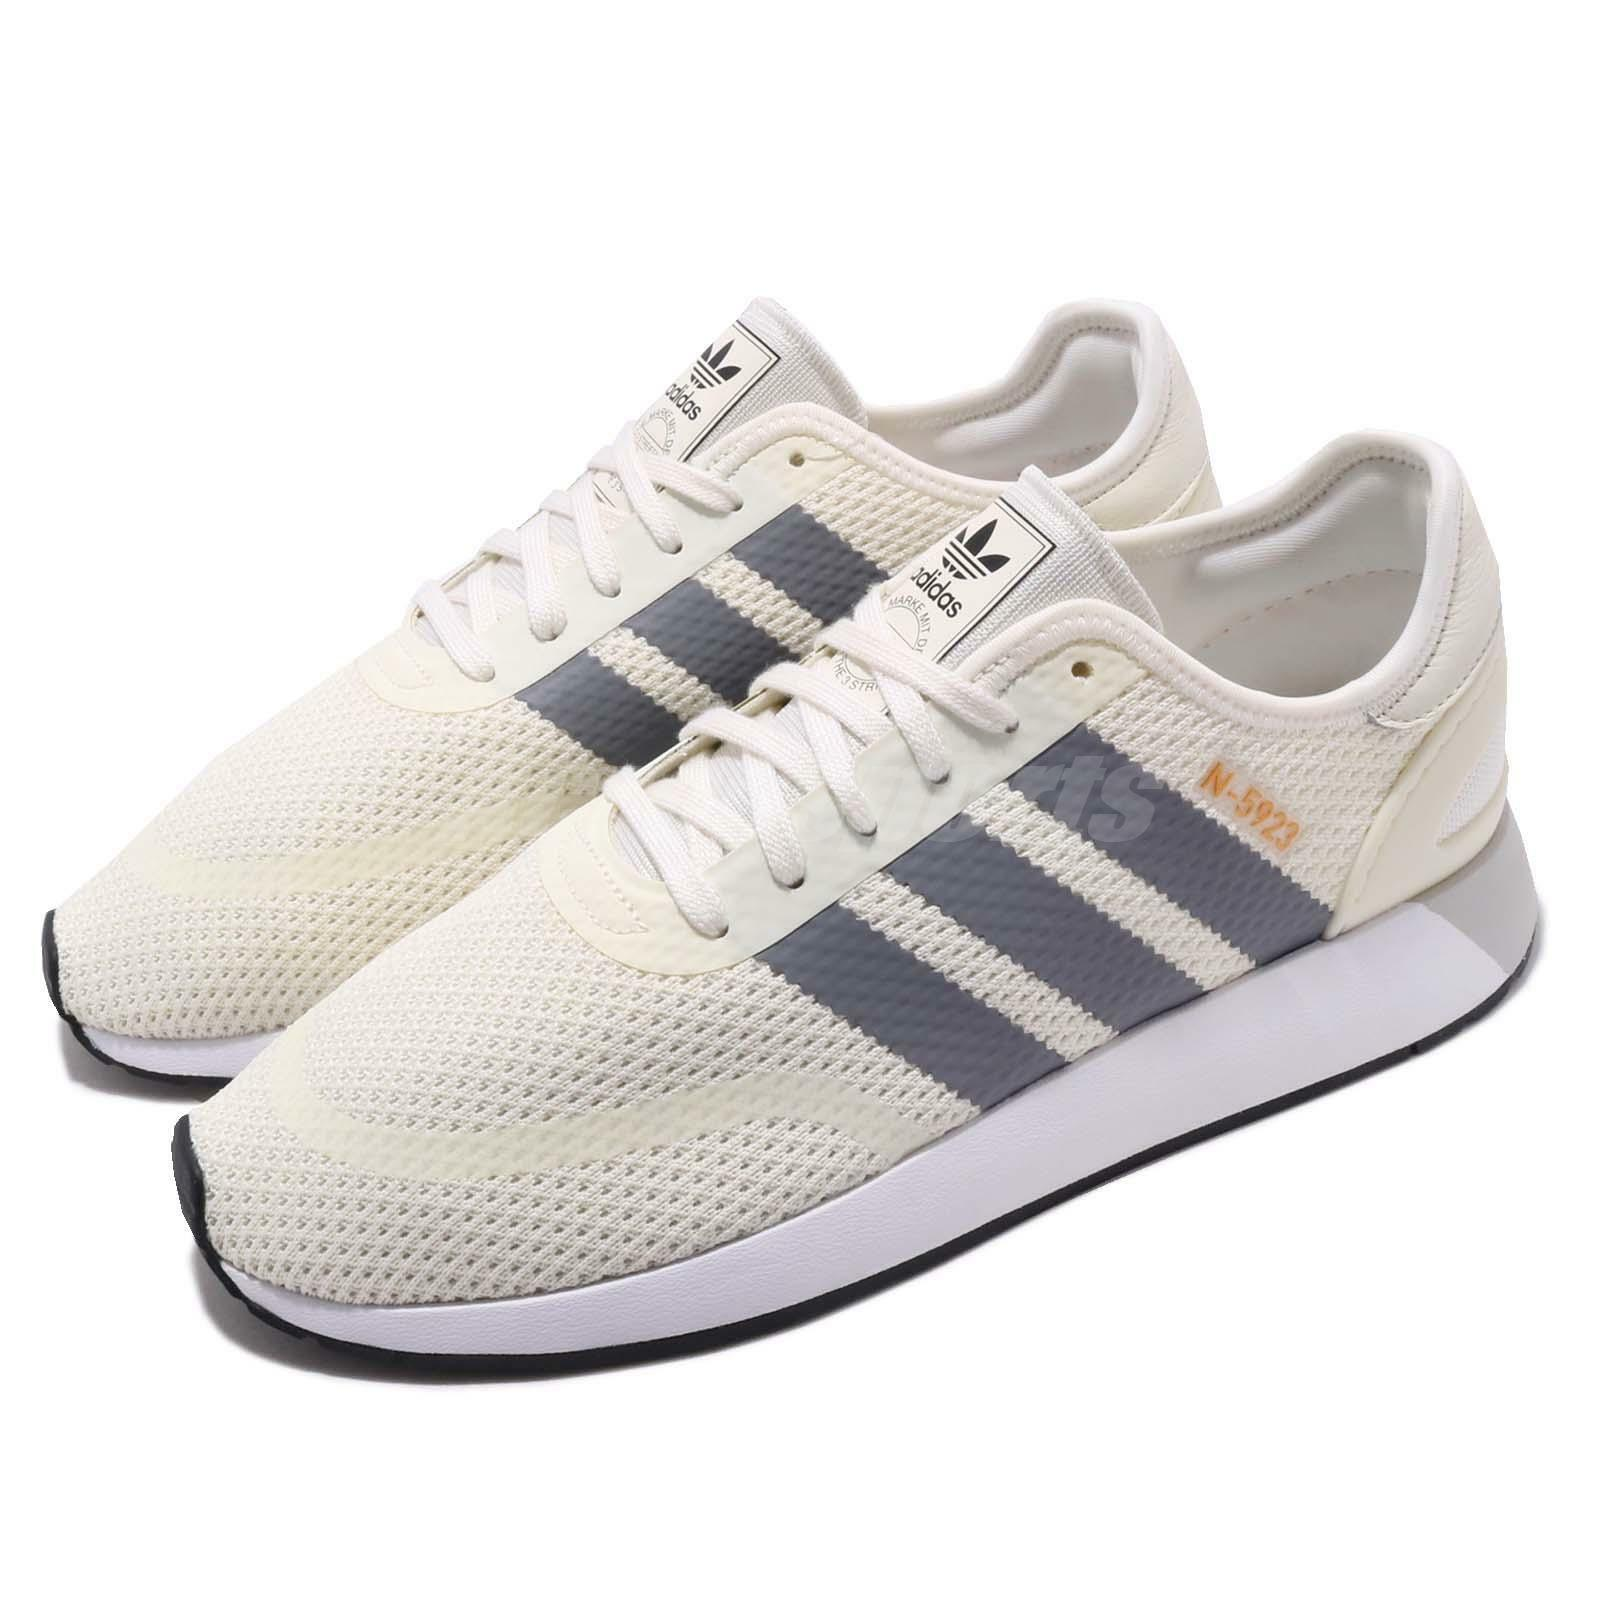 Adidas Originals N-5923 White Grey Mens Retro Running shoes Sneakers DB0958